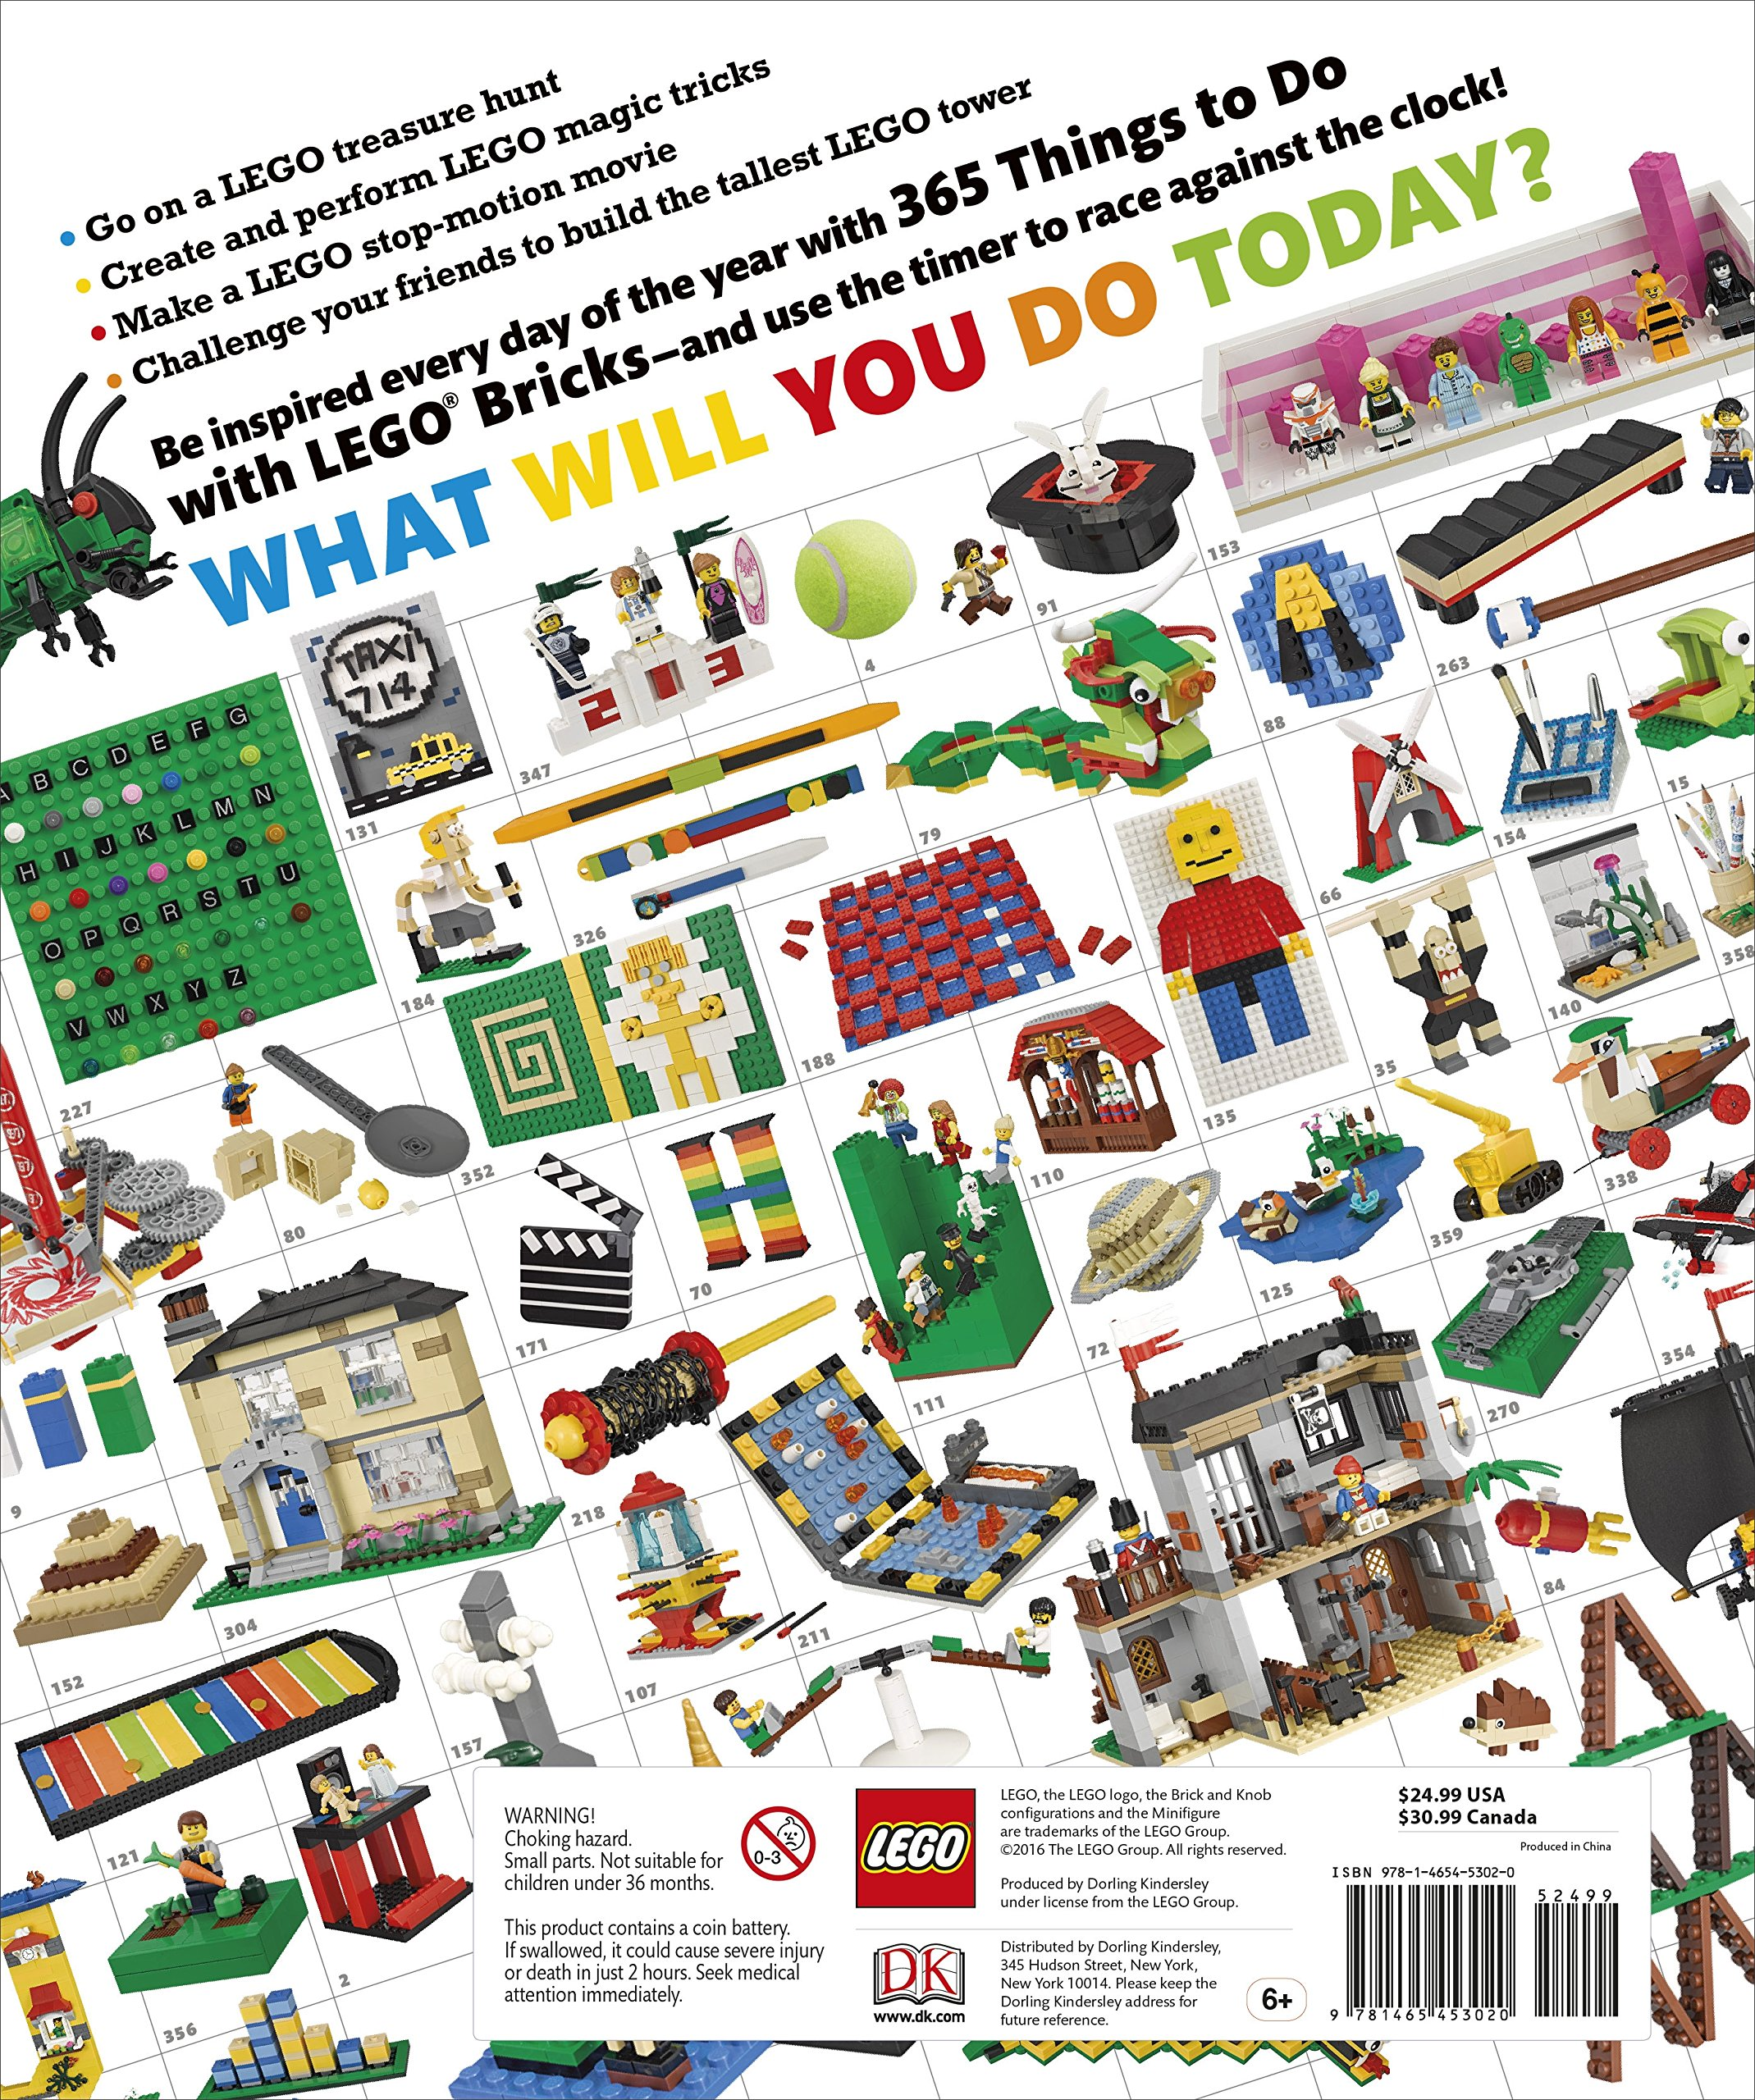 365 Things to Do with LEGO Bricks: Lego Fun Every Day of the Year by DK Publishing Dorling Kindersley (Image #1)